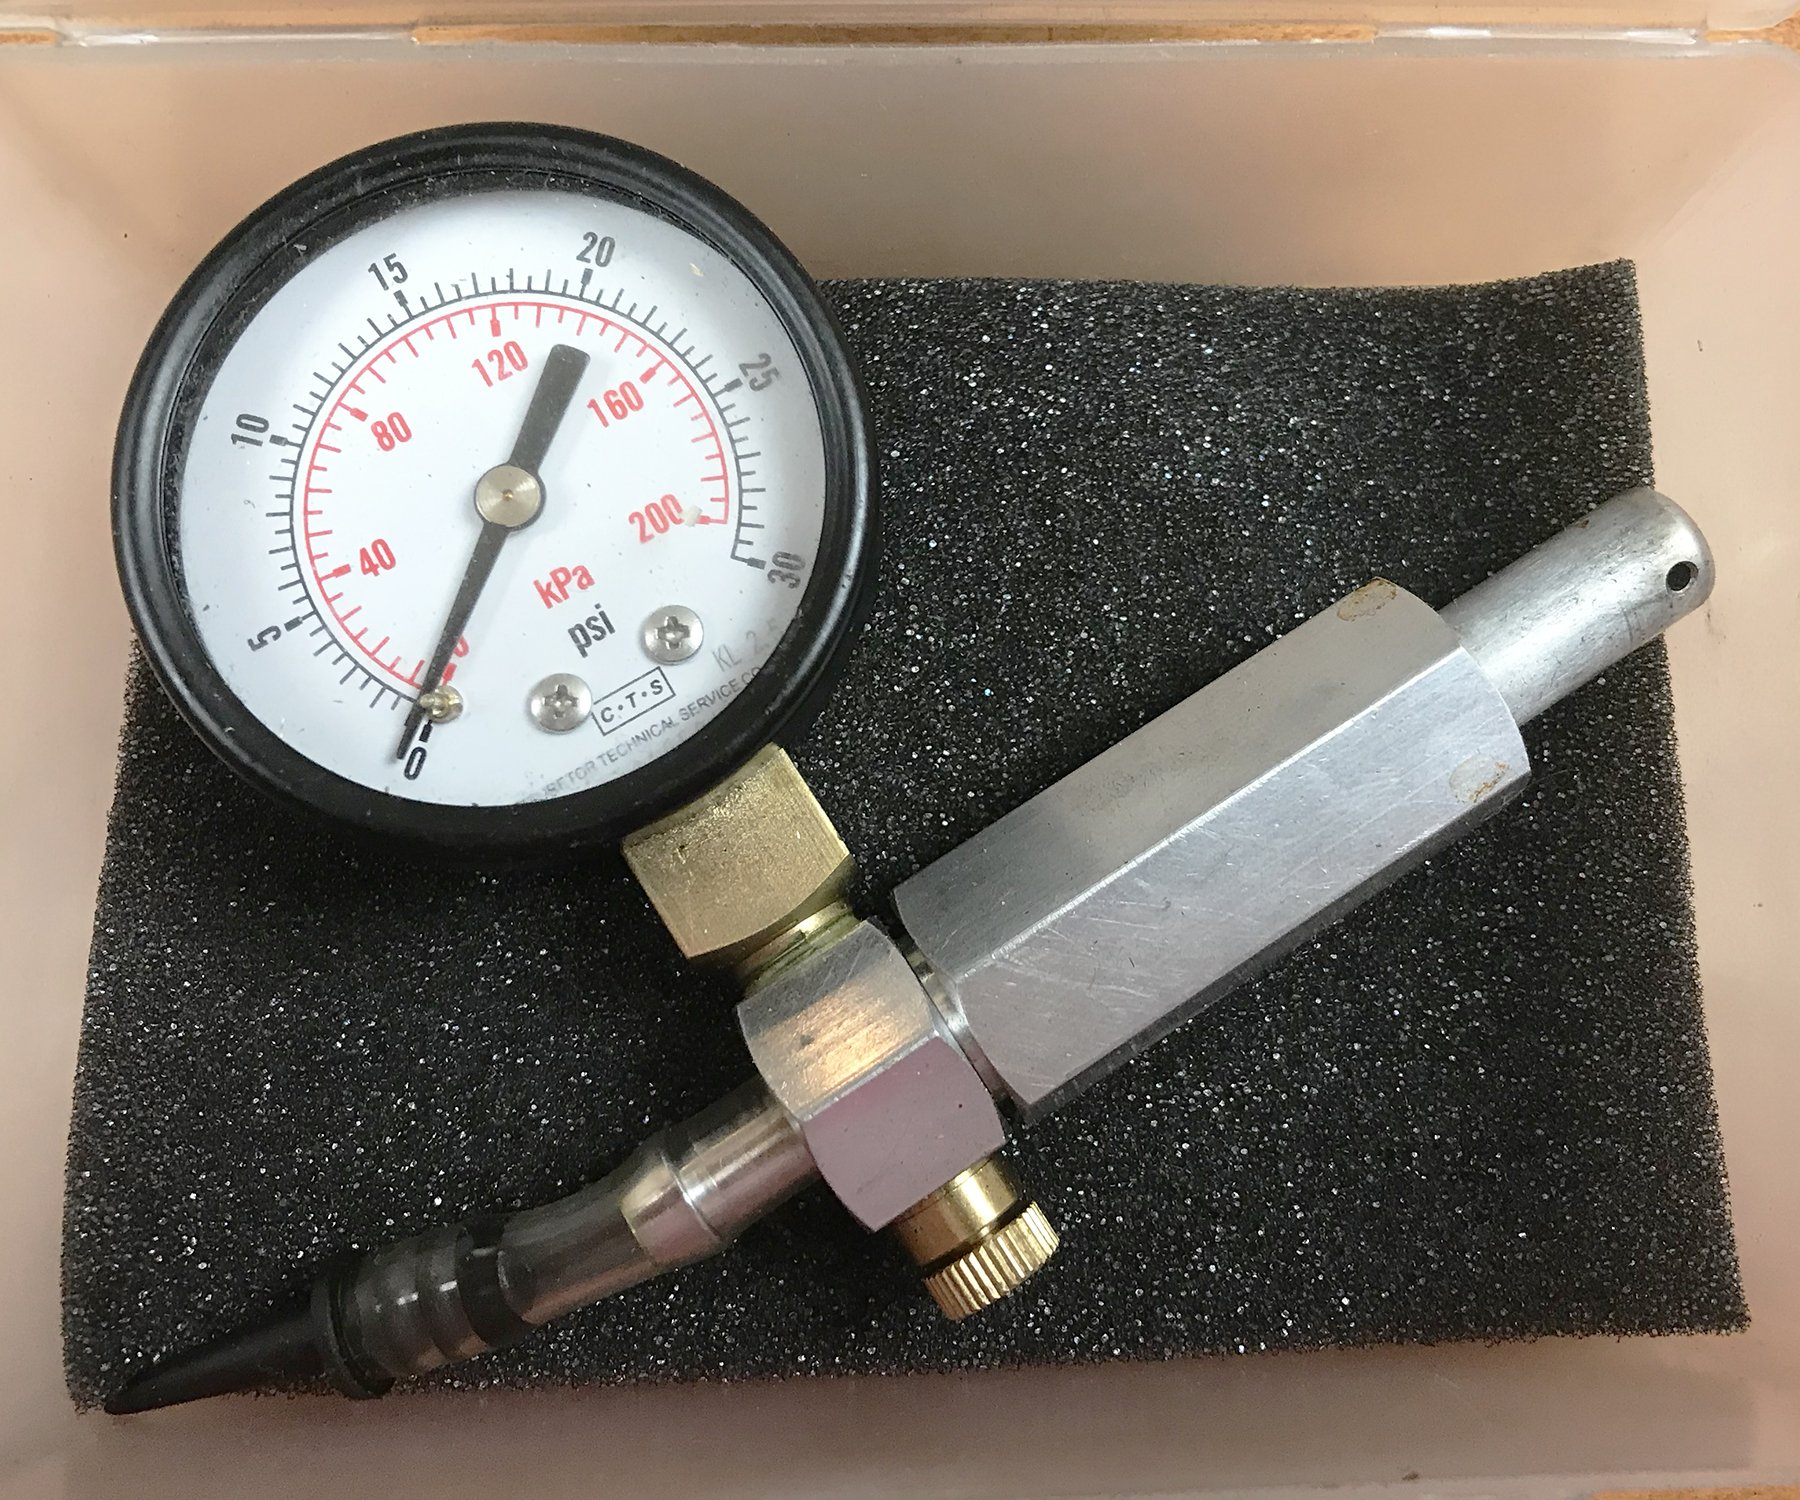 Get a good pressure check gauge. If you run 2-strokes, you'll need it often. I found this one on the internet for about $35.